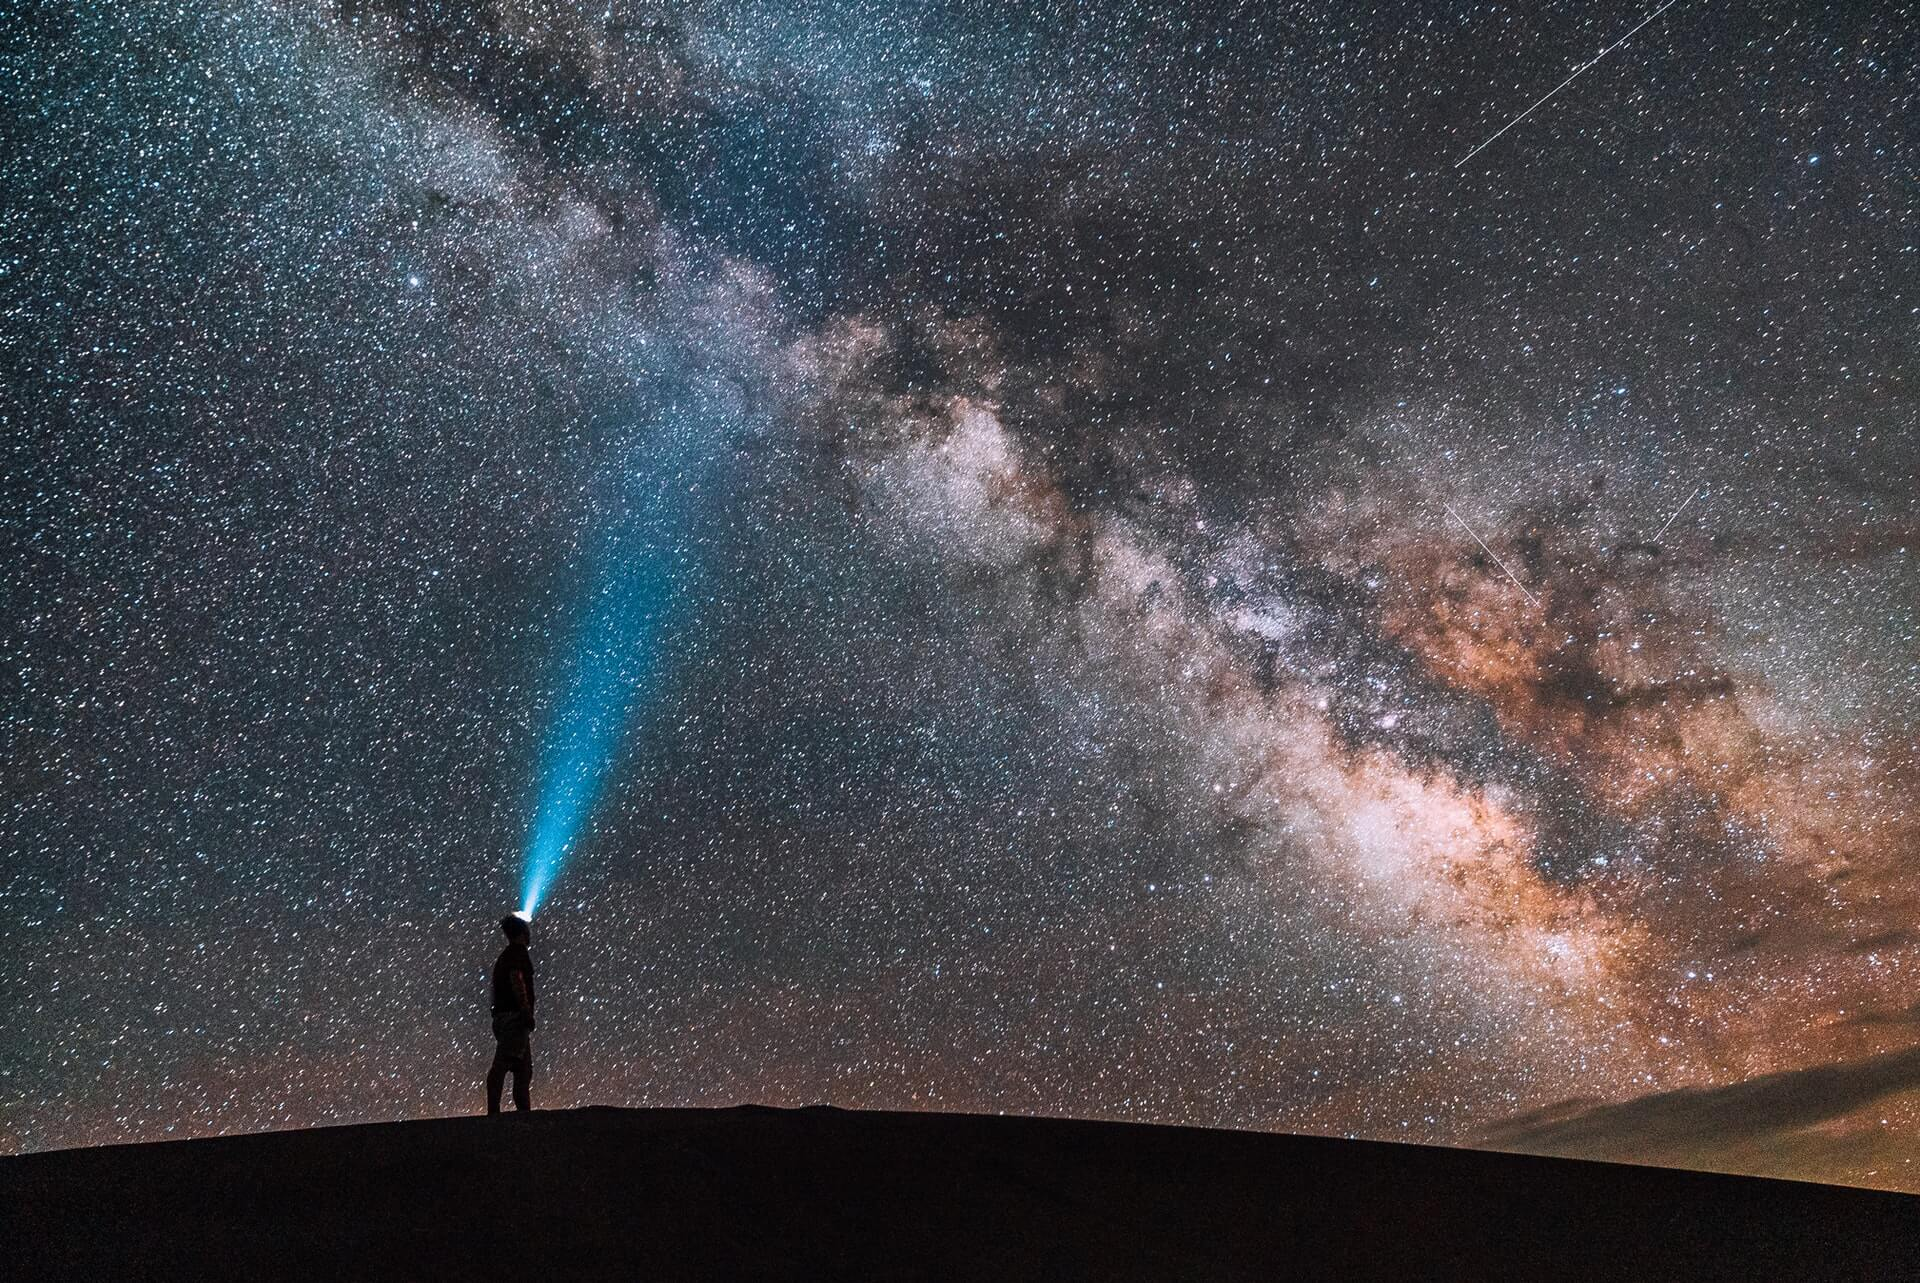 use-law-attraction-man-looking-milky-way-beam-from-head